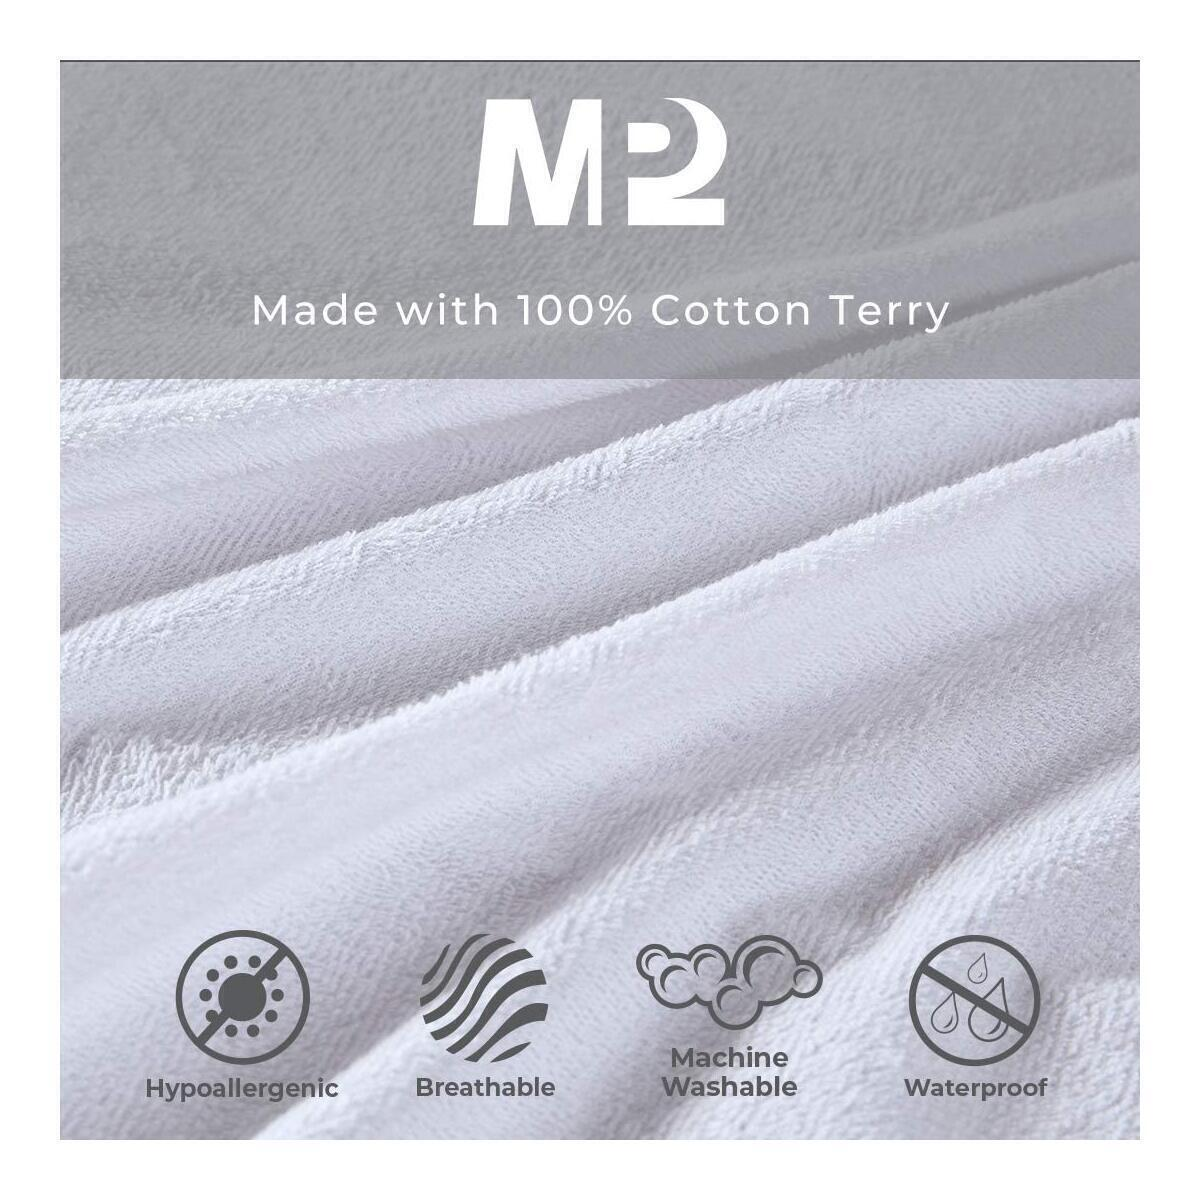 Waterproof Twin XL Size Mattress Protector, Breathable Cooling Cotton Terry Bed Cover Deep Pocket - Fits 4